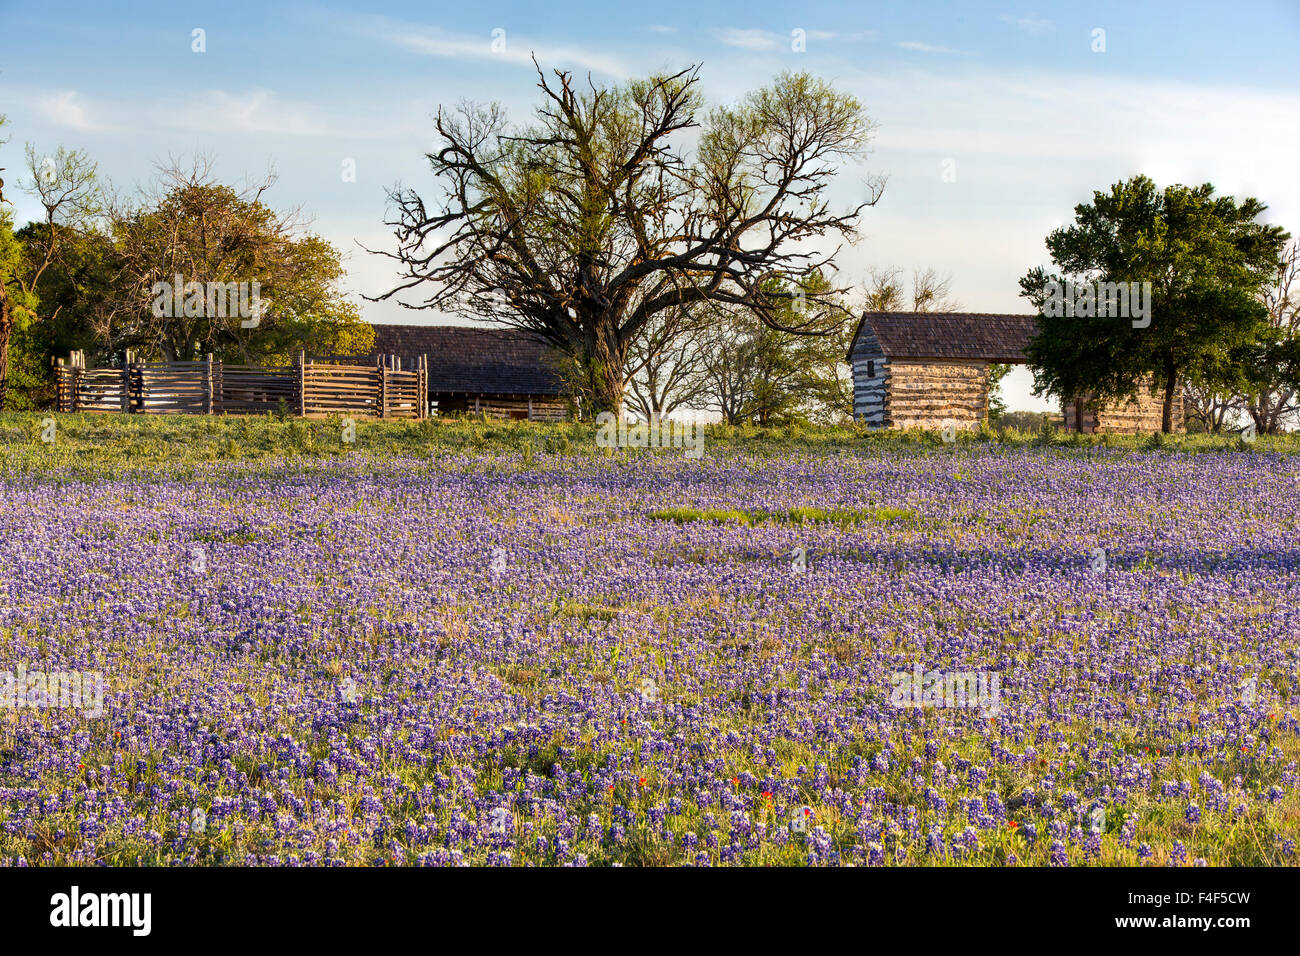 Field of bluebonnets and paintbrush wildflowers at LBJ State Park in Stonewall, Texas USA. Stock Photo